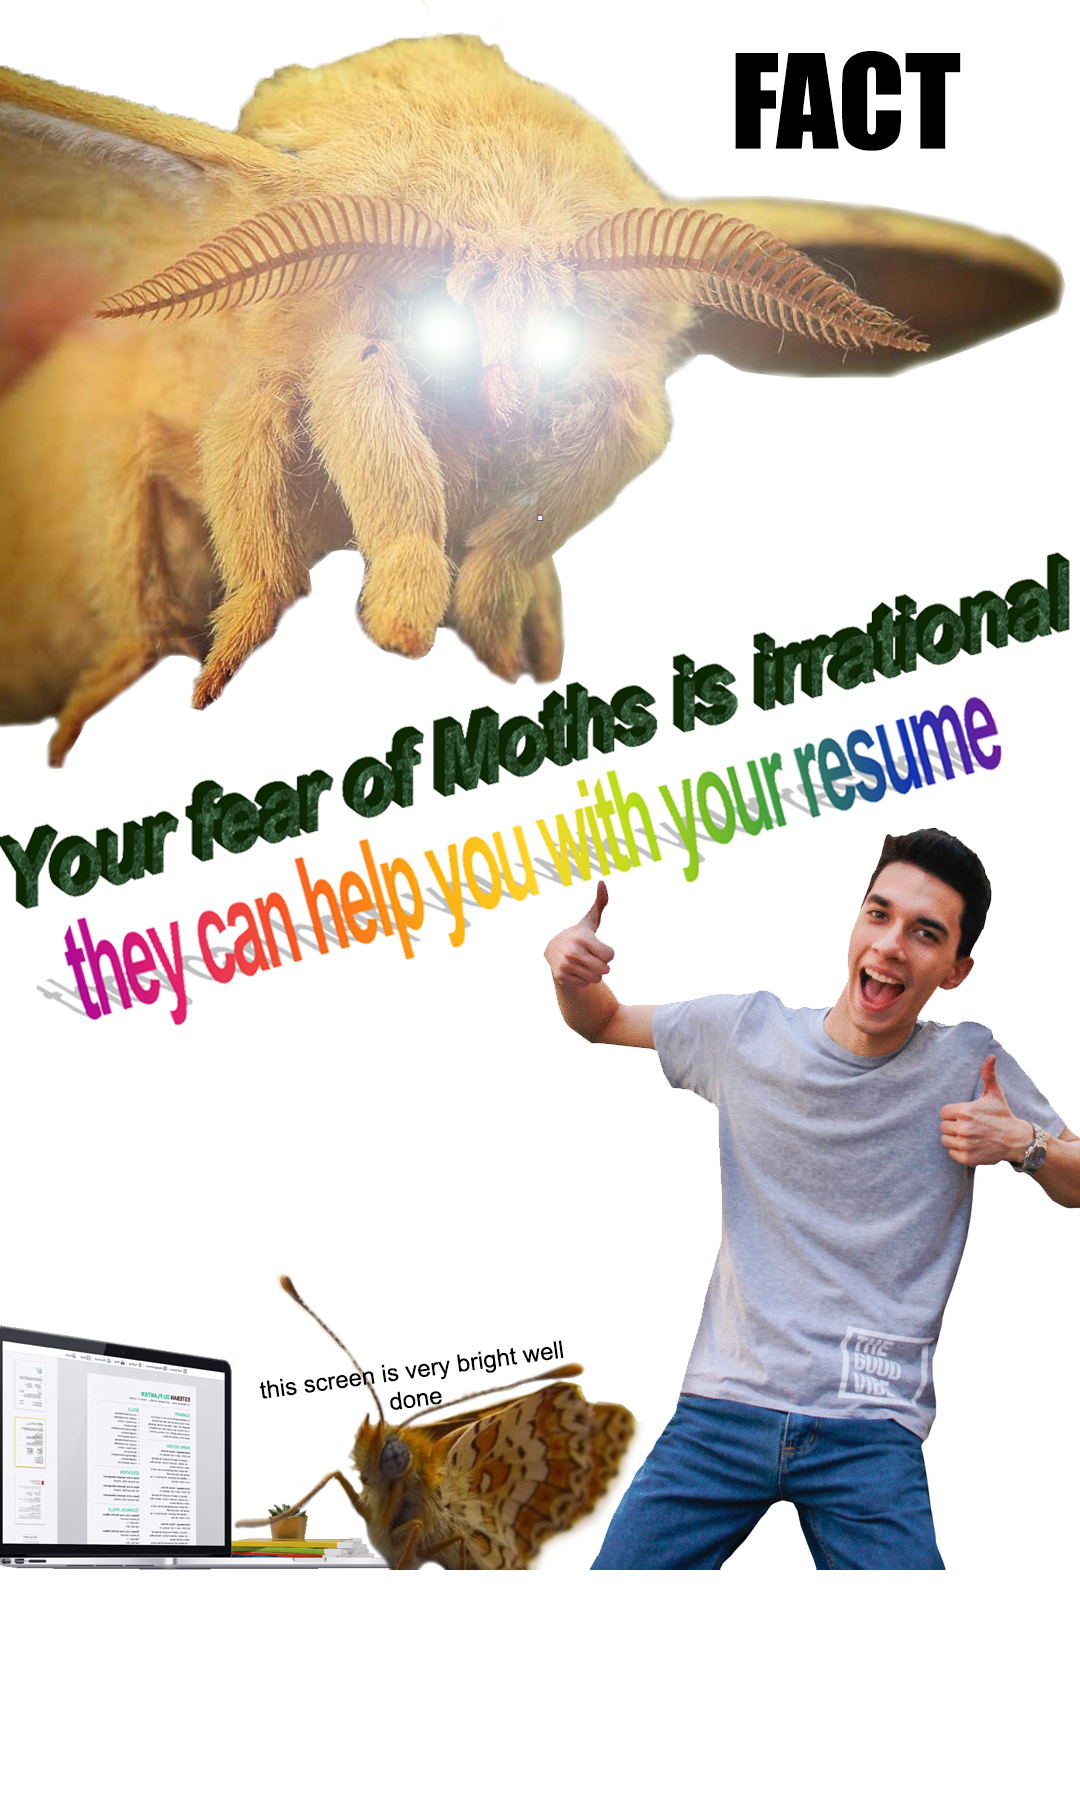 Pin by Wendy Pottratz on Surreal Memes Stupid memes